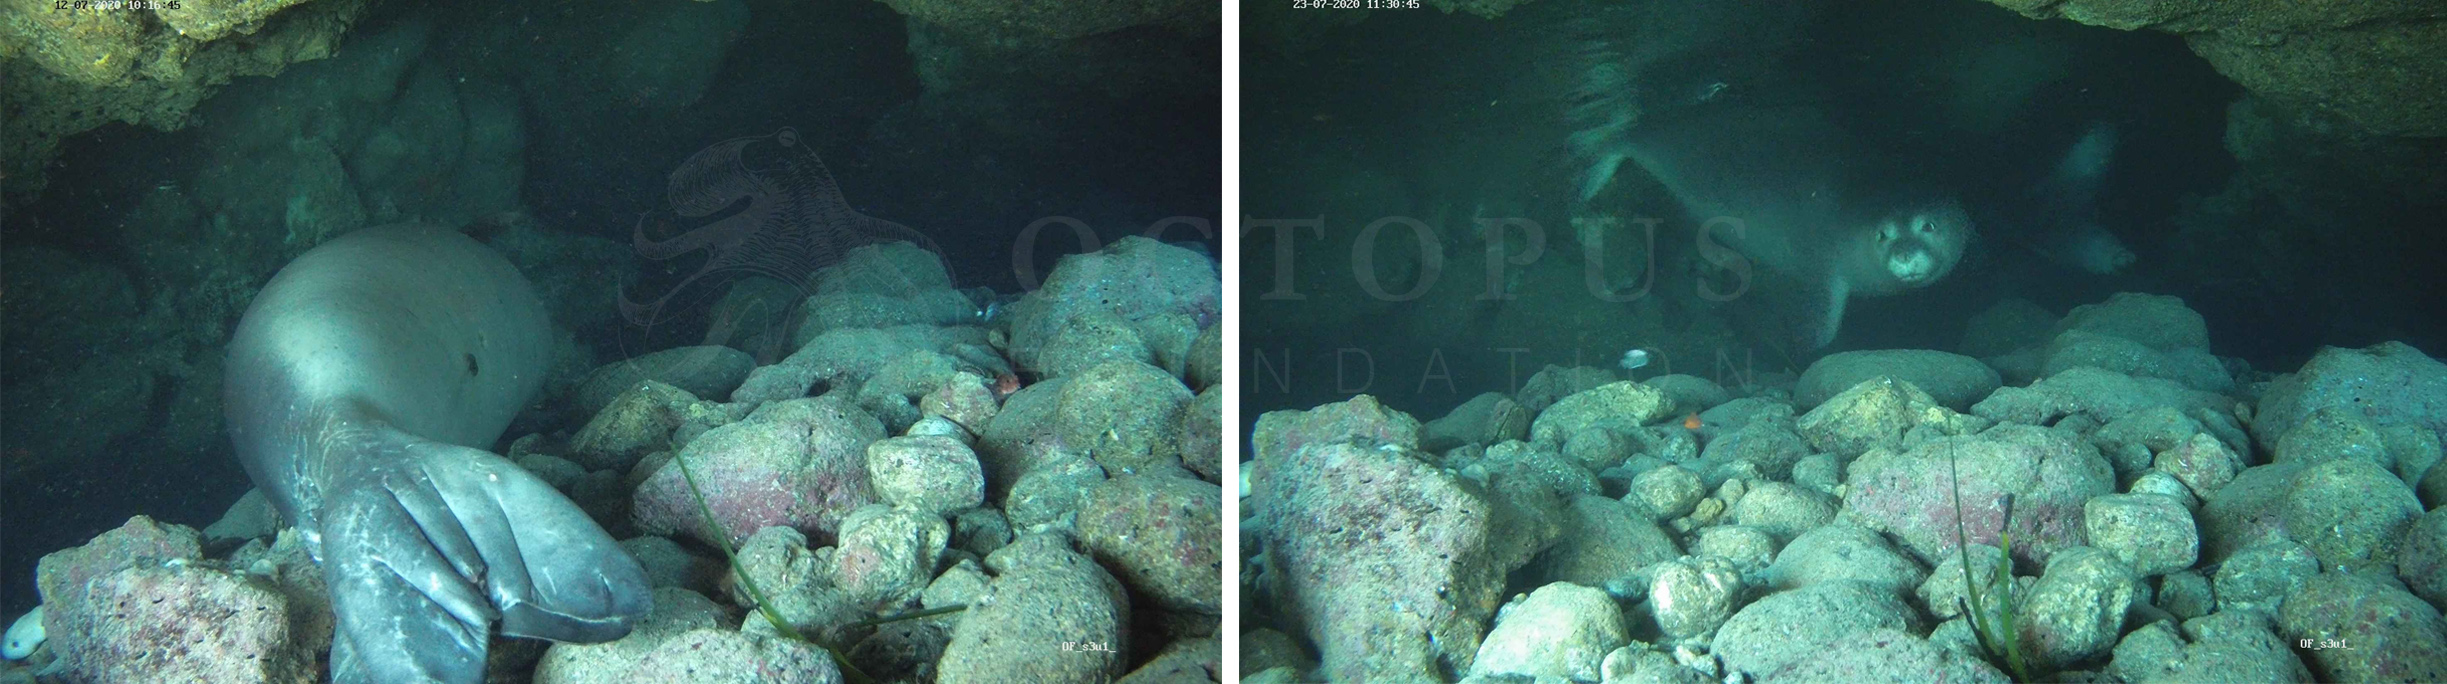 A few hours after the set up of the underwater camera, such photos were remotely sent to our server © Octopus Foundation